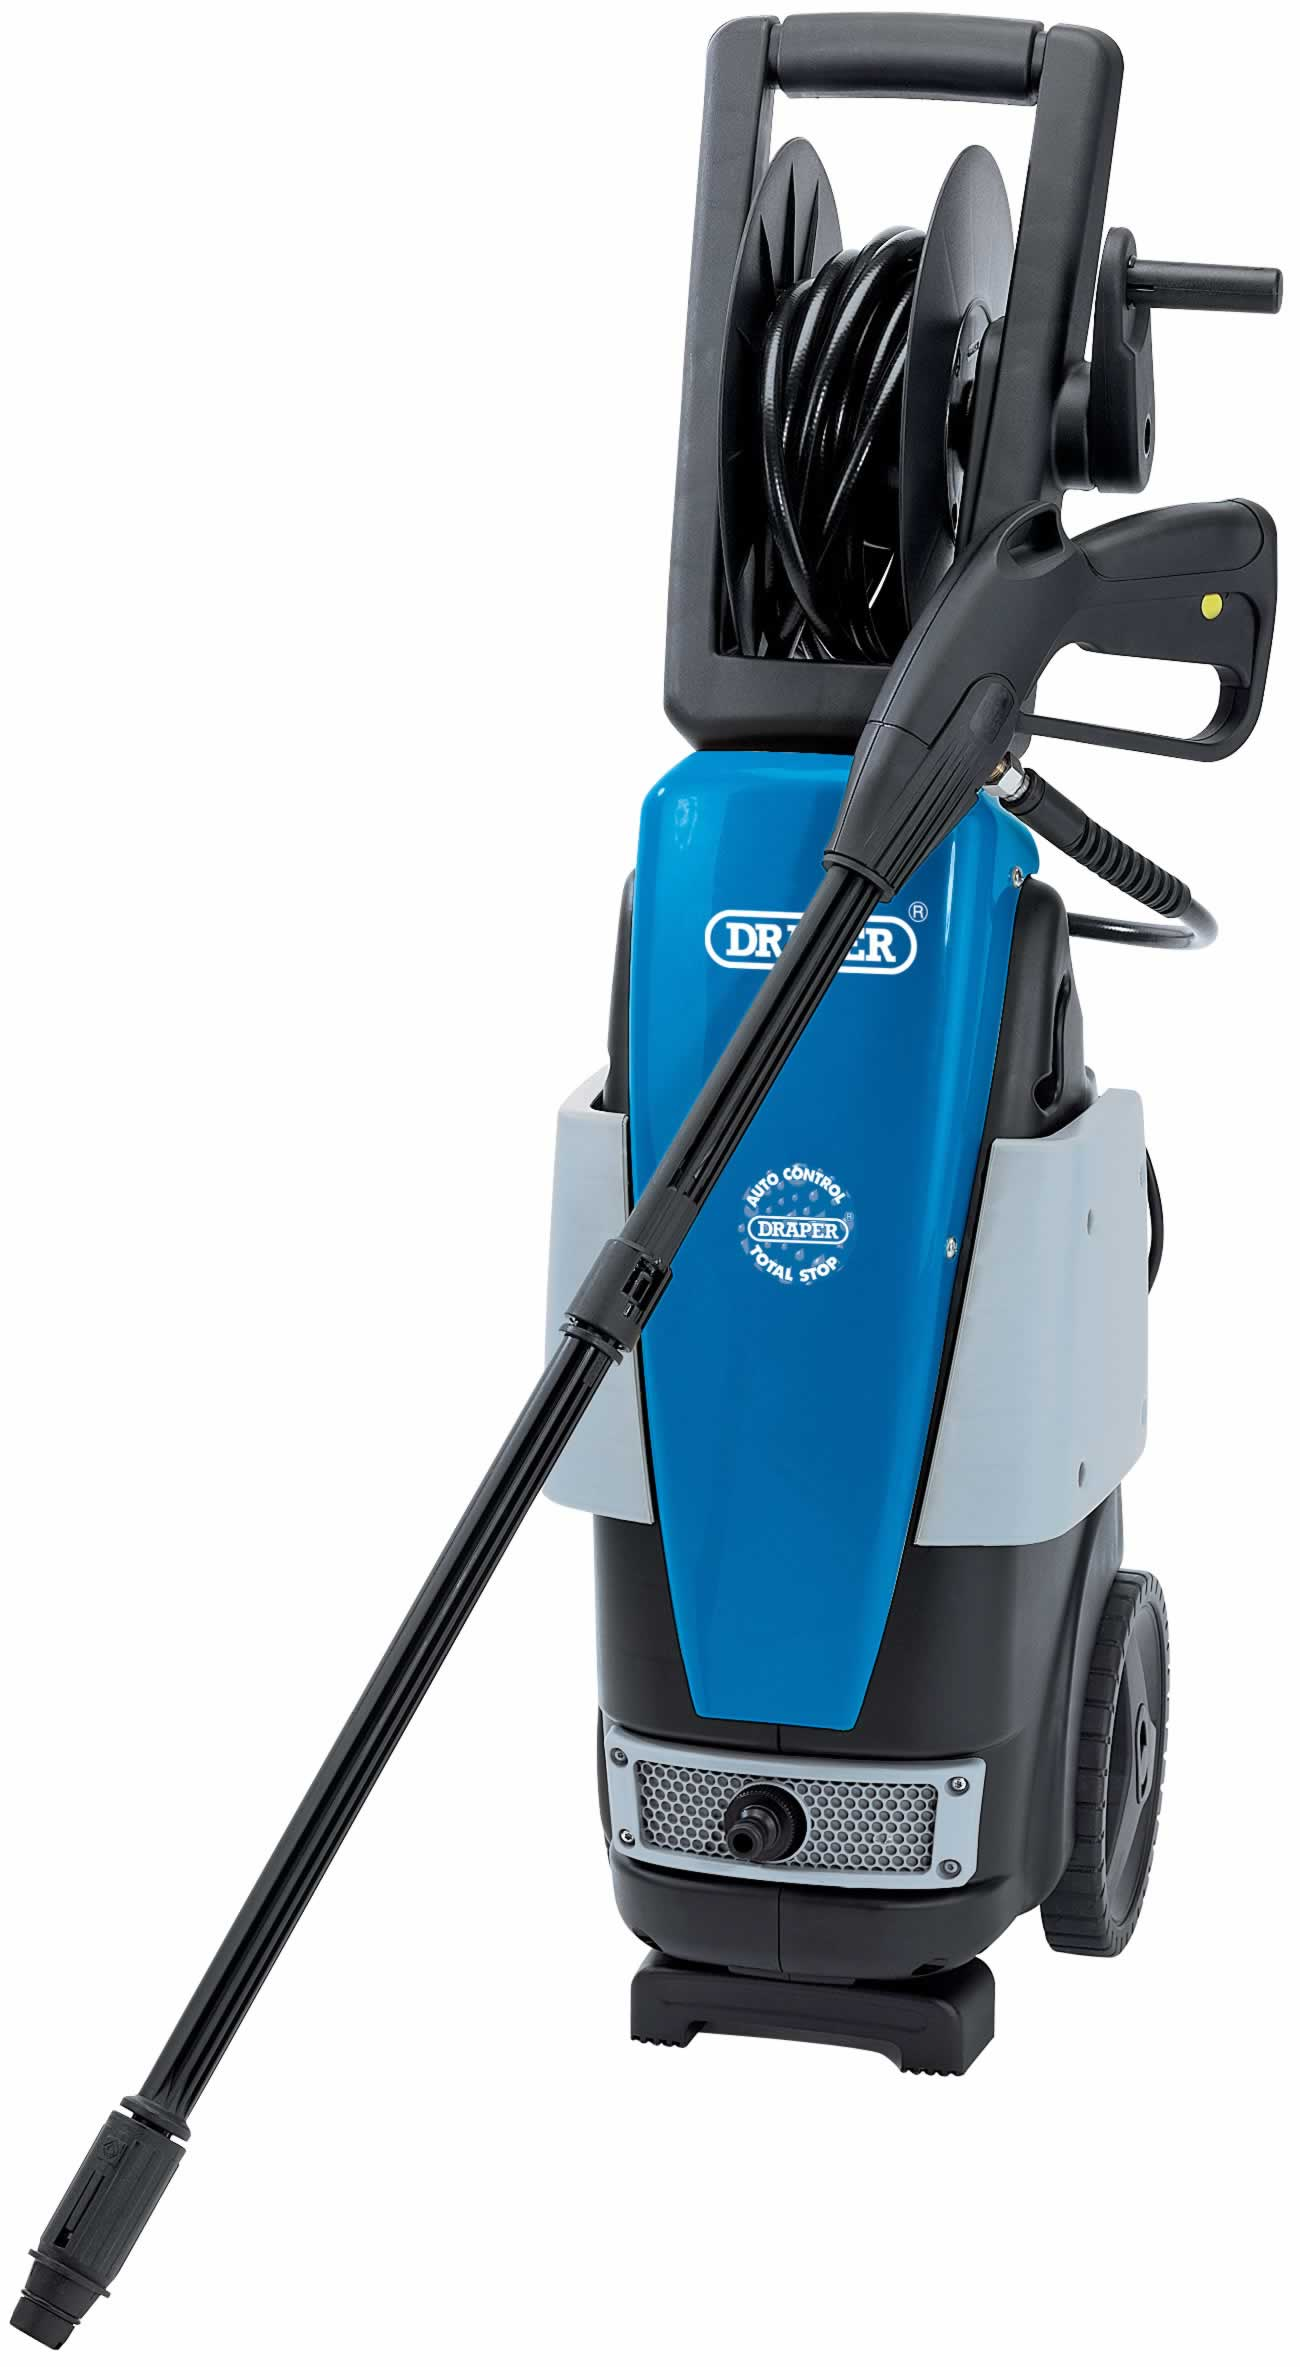 1900W 230V PRESSURE WASHER WITH TOTAL STOP FEATURE